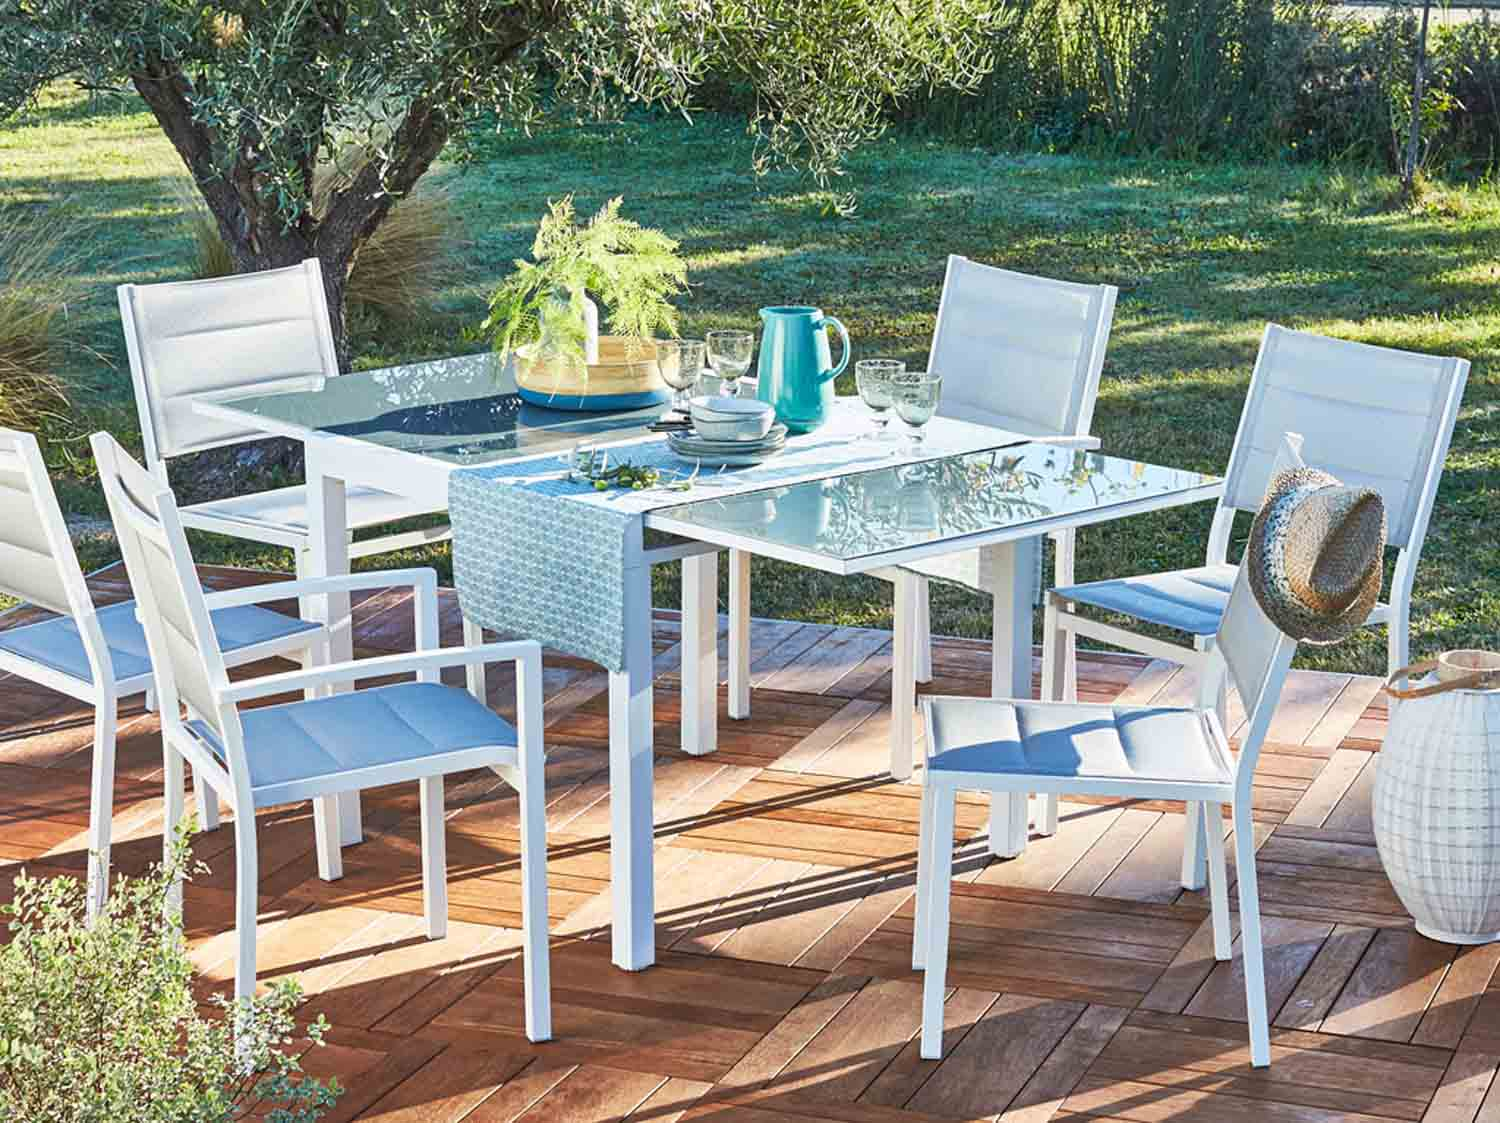 Leroy Merlin Table De Jardin Salon De Jardin Table Et Chaise Leroy Merlin